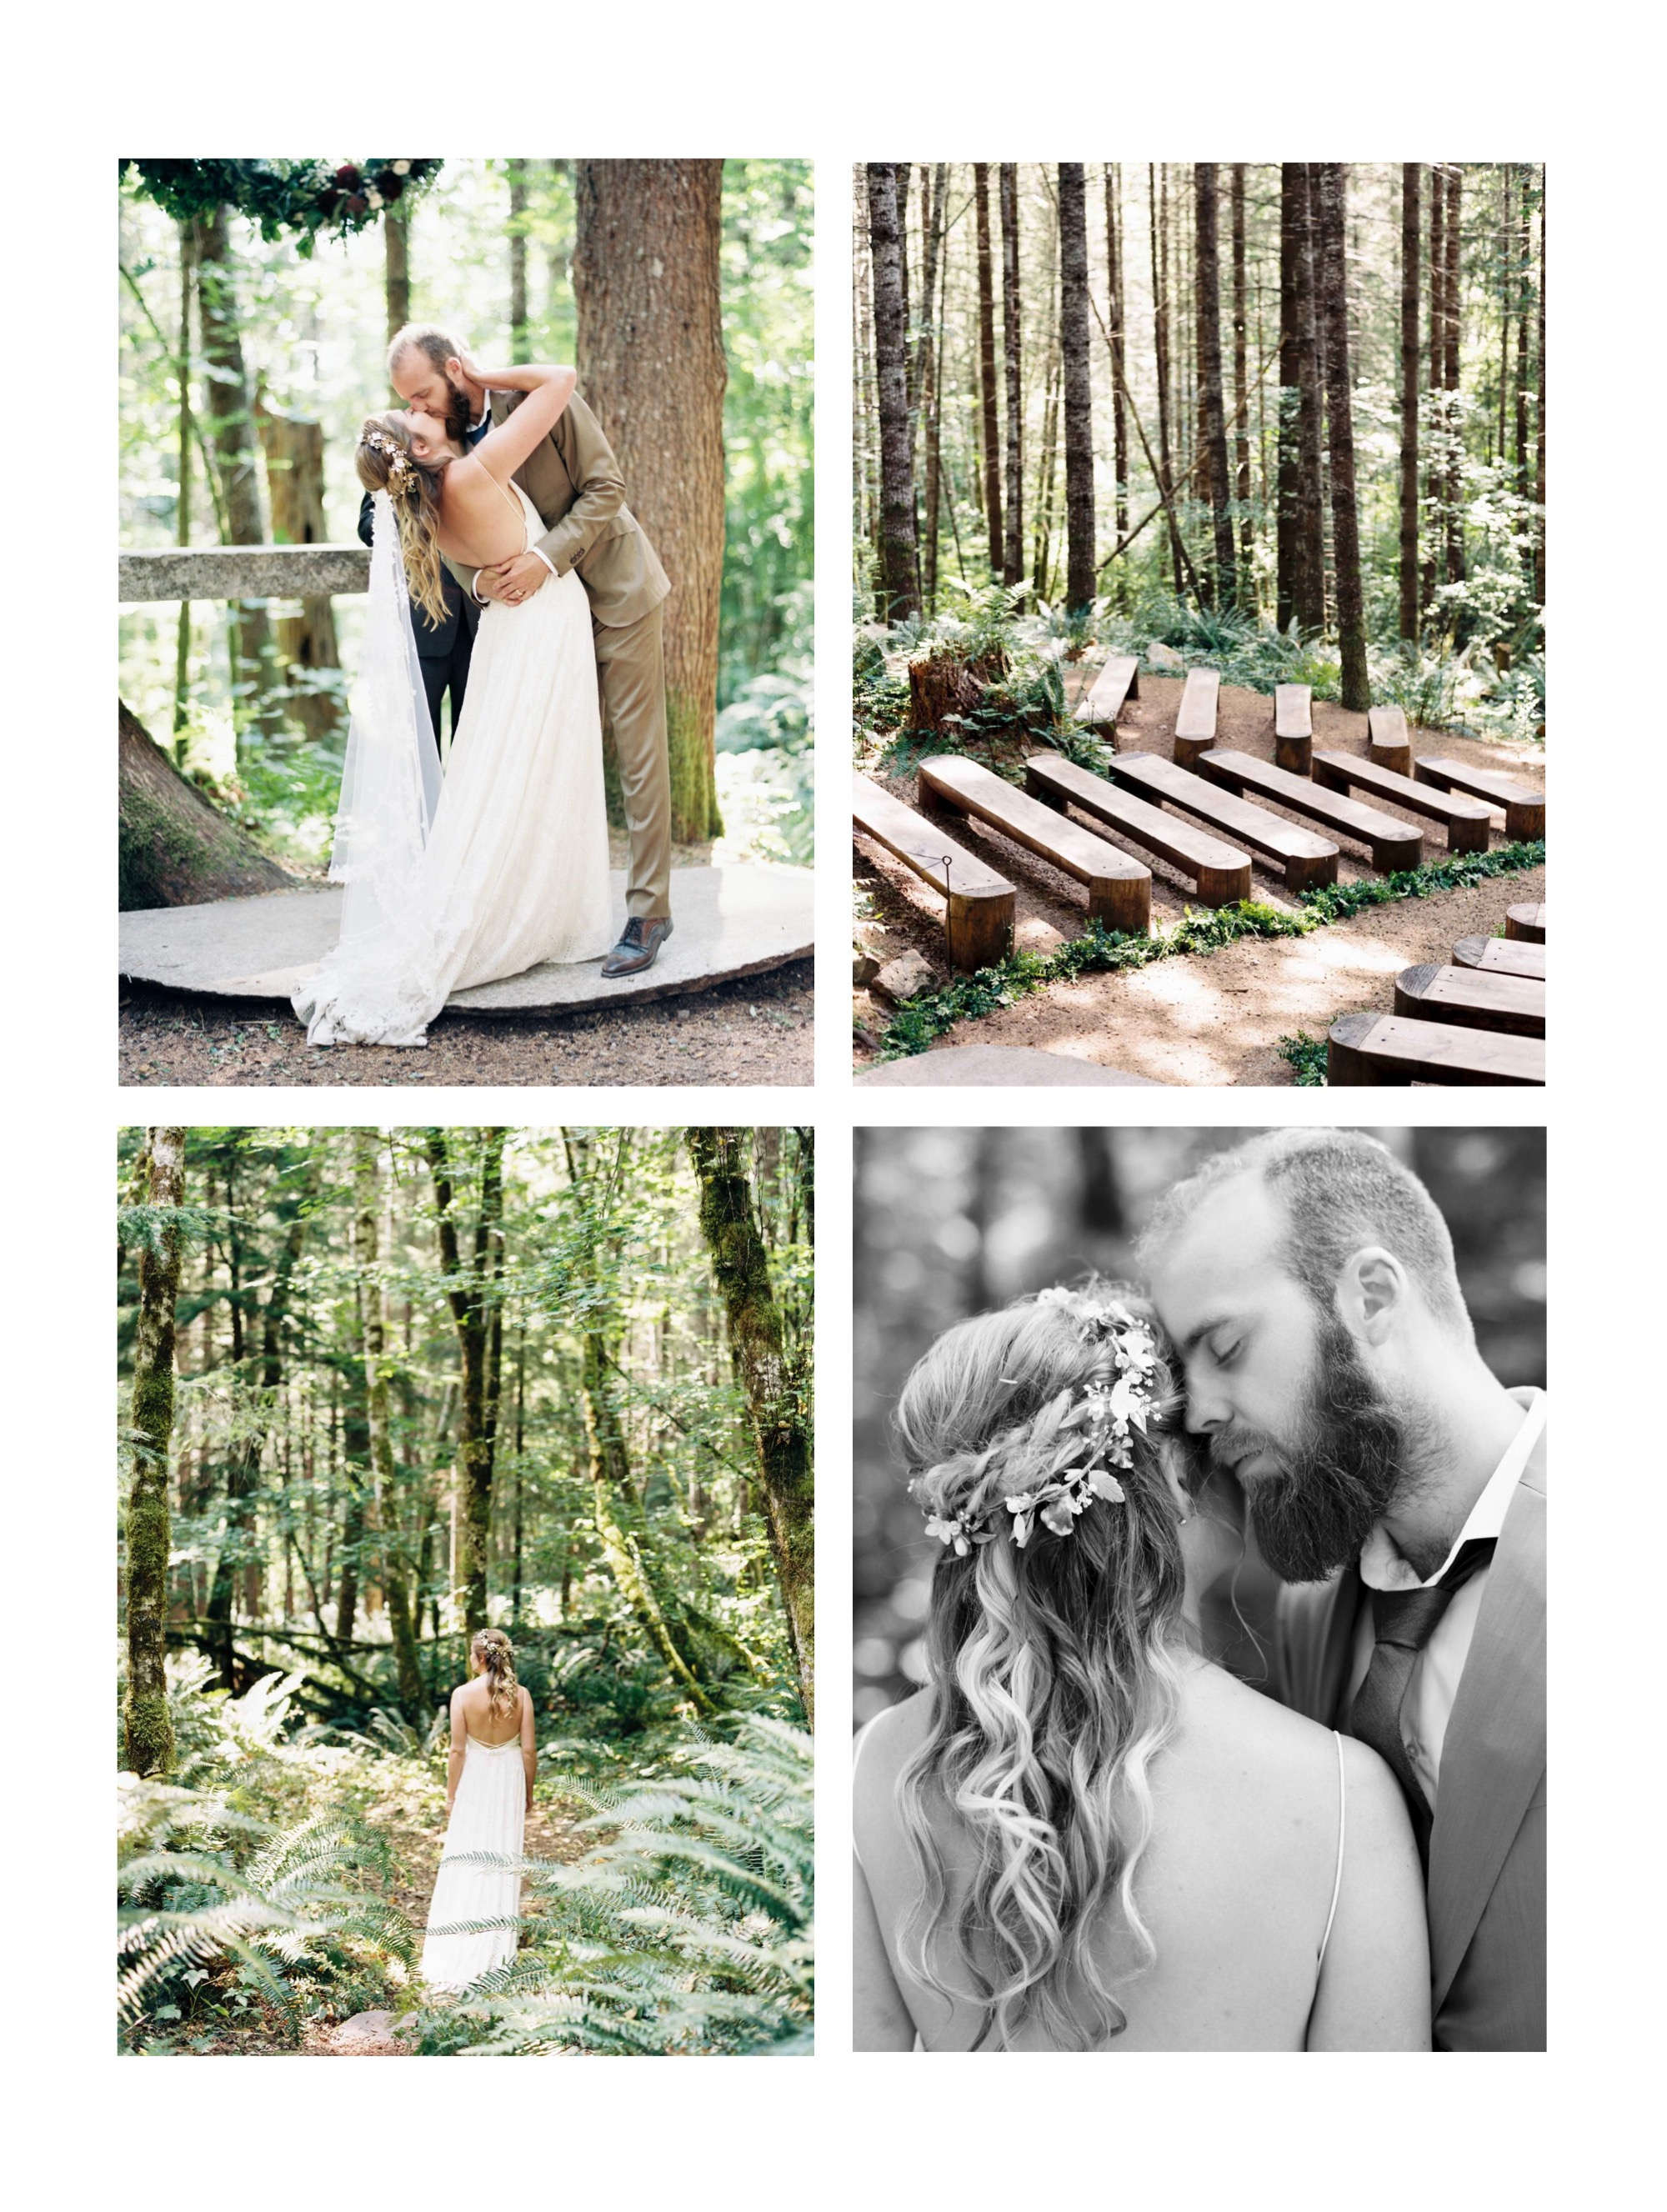 Ten Exceptionally Beautiful Forest Wedding Venues in Washington | Seattle + Destination Wedding Photographer Anna Peters